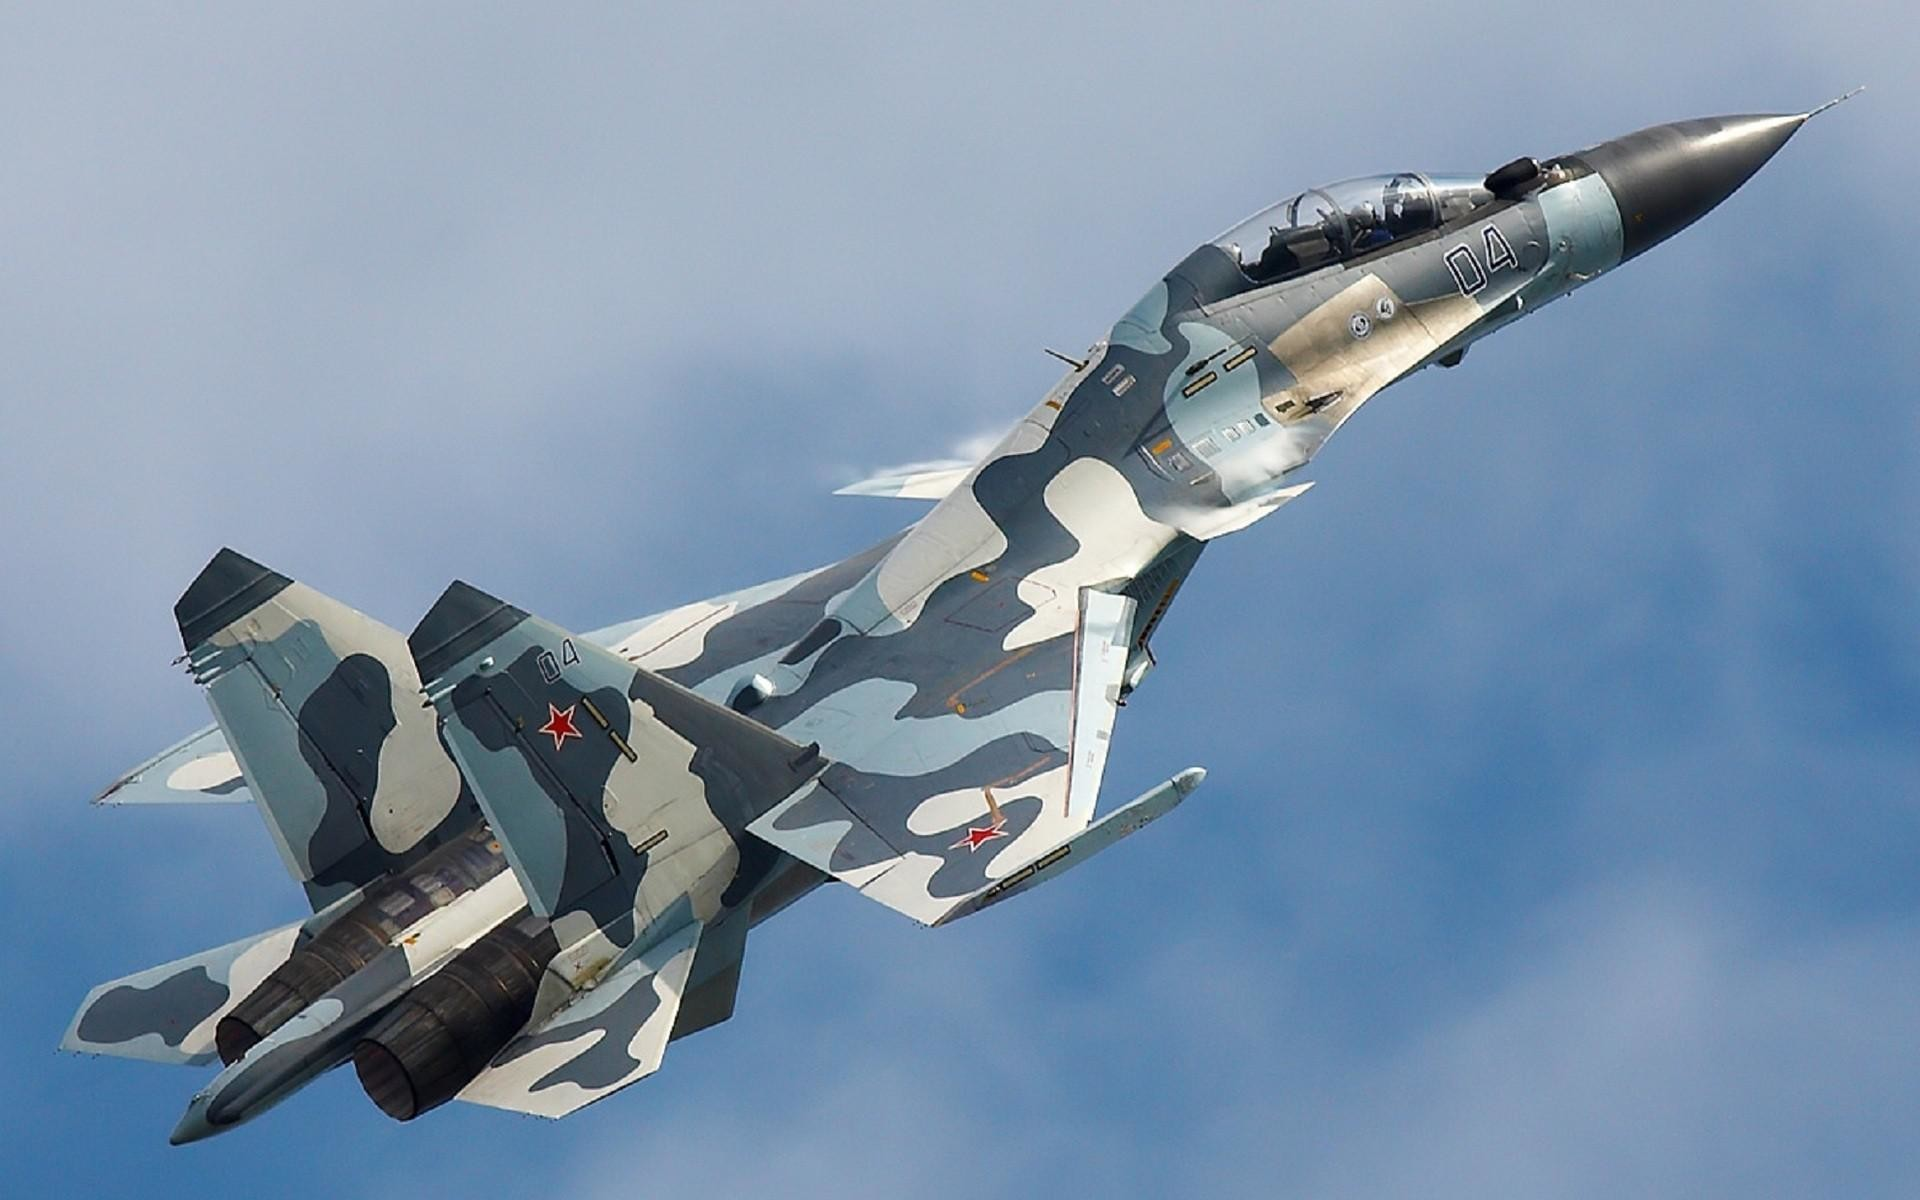 1920x1200 HD Aircraft Russia Air Force Su 35 Flanker 30mki Fighter Jets Photo Background Wallpaper